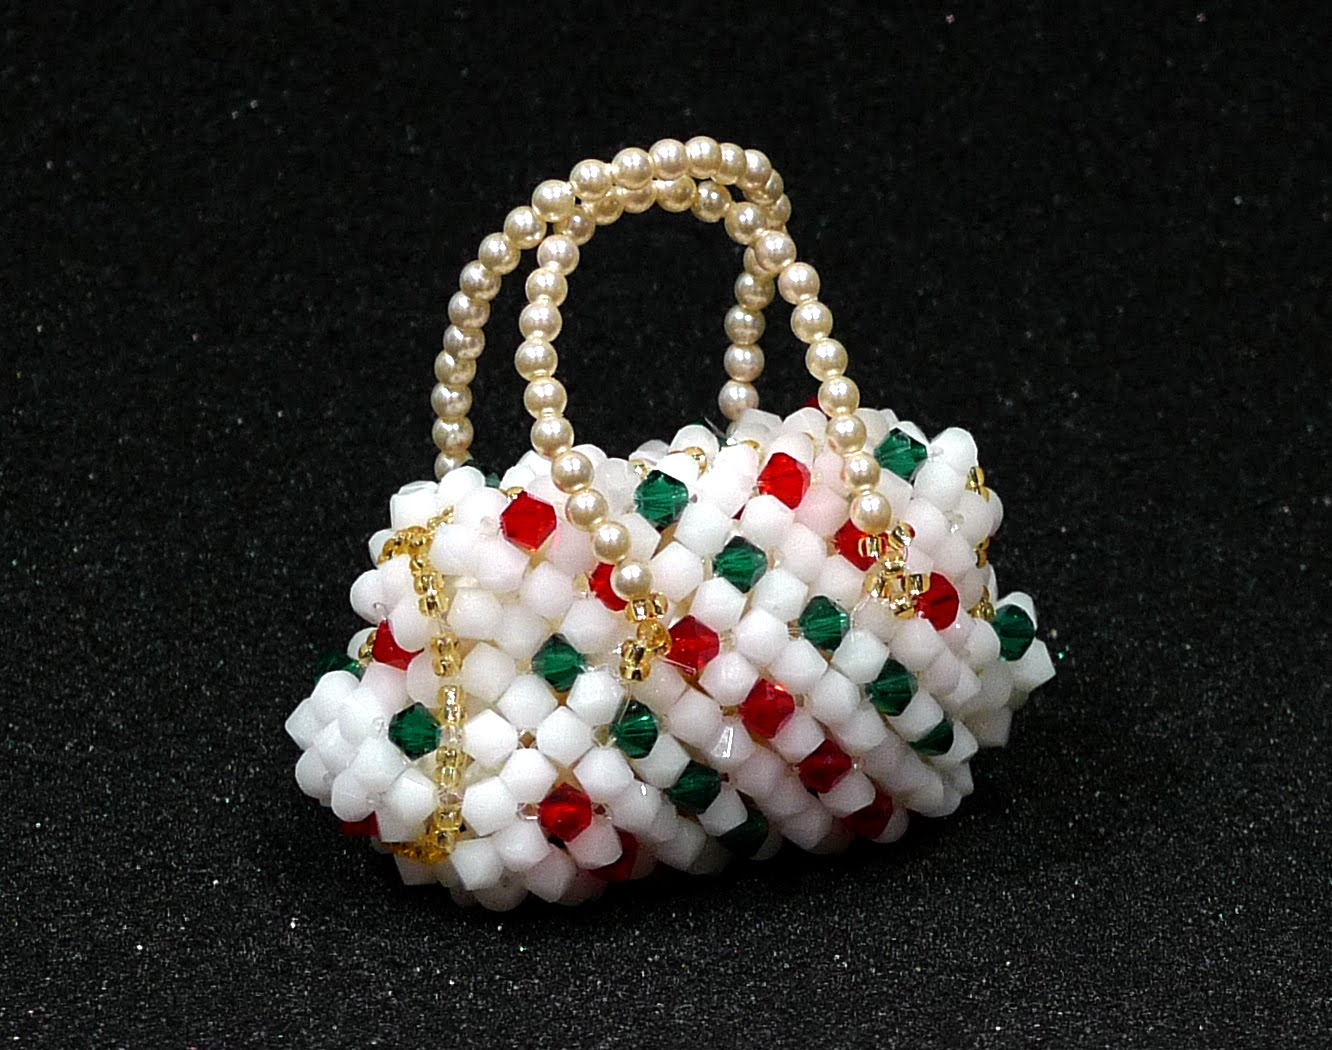 nouveau deco purses bags pinterest bag for of on art clutchs beaded beads images best sale nastyakabanova